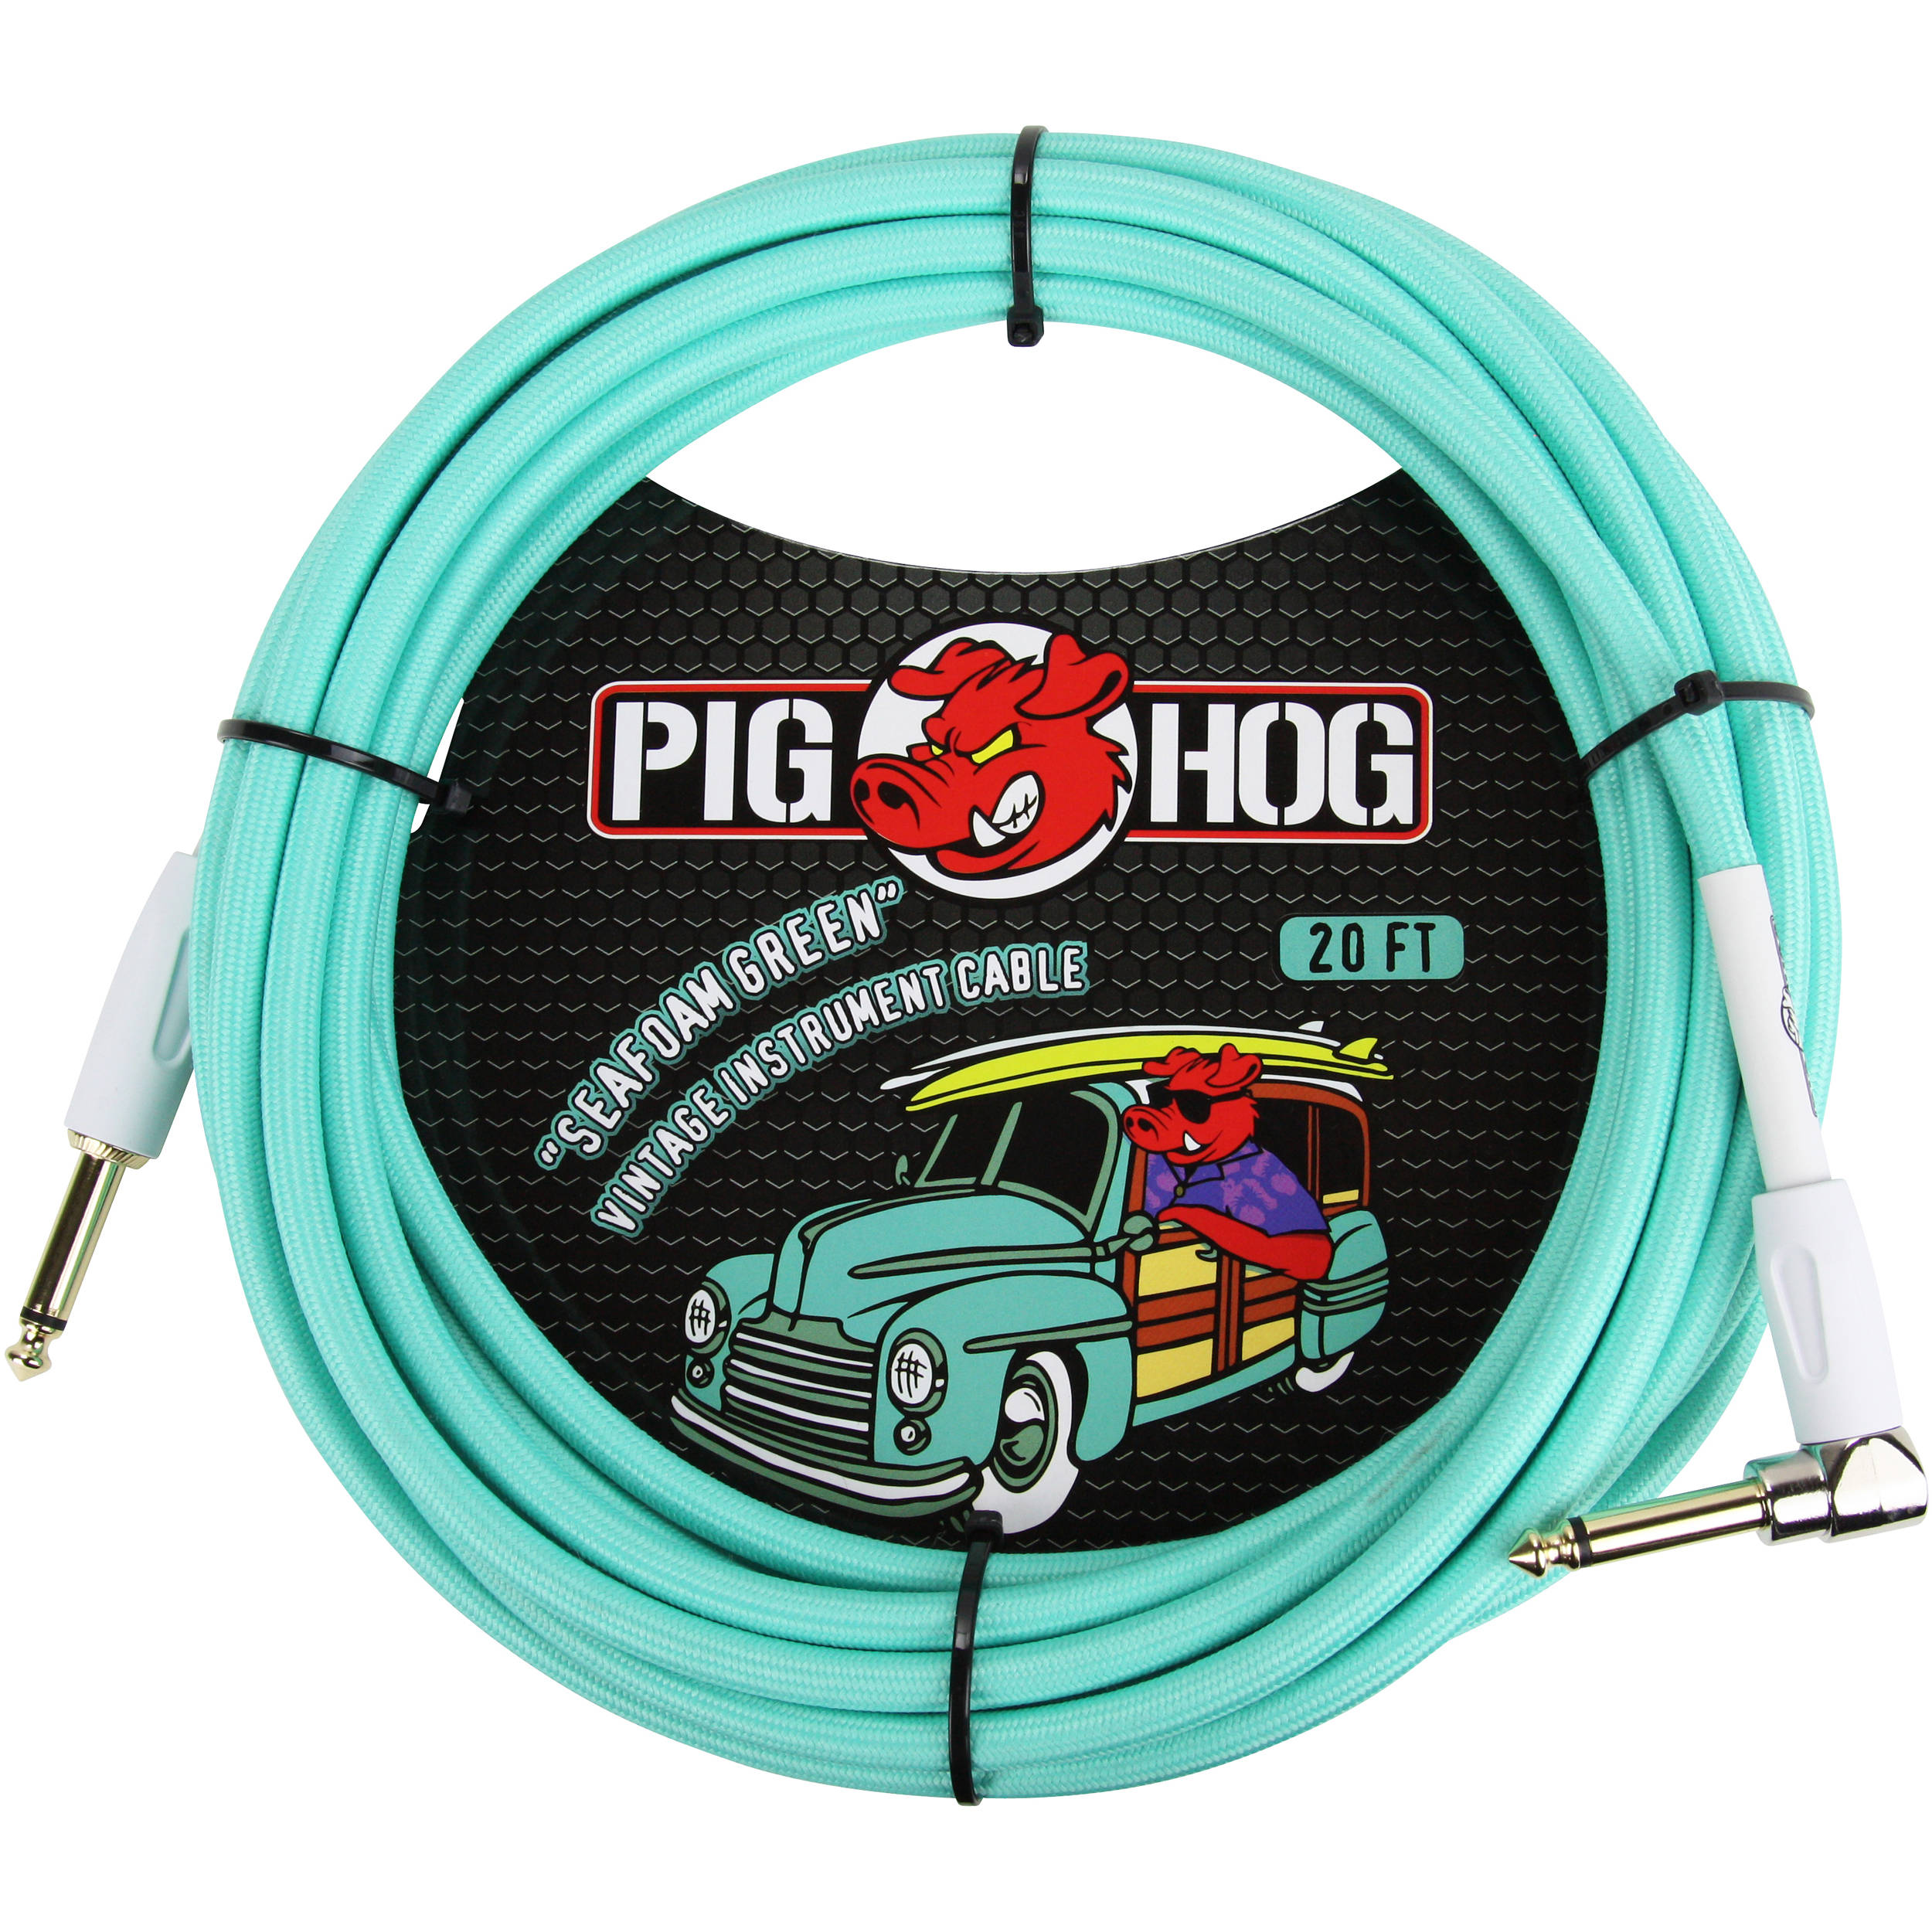 PIG HOG 20 FT SEAFOAM GREEN